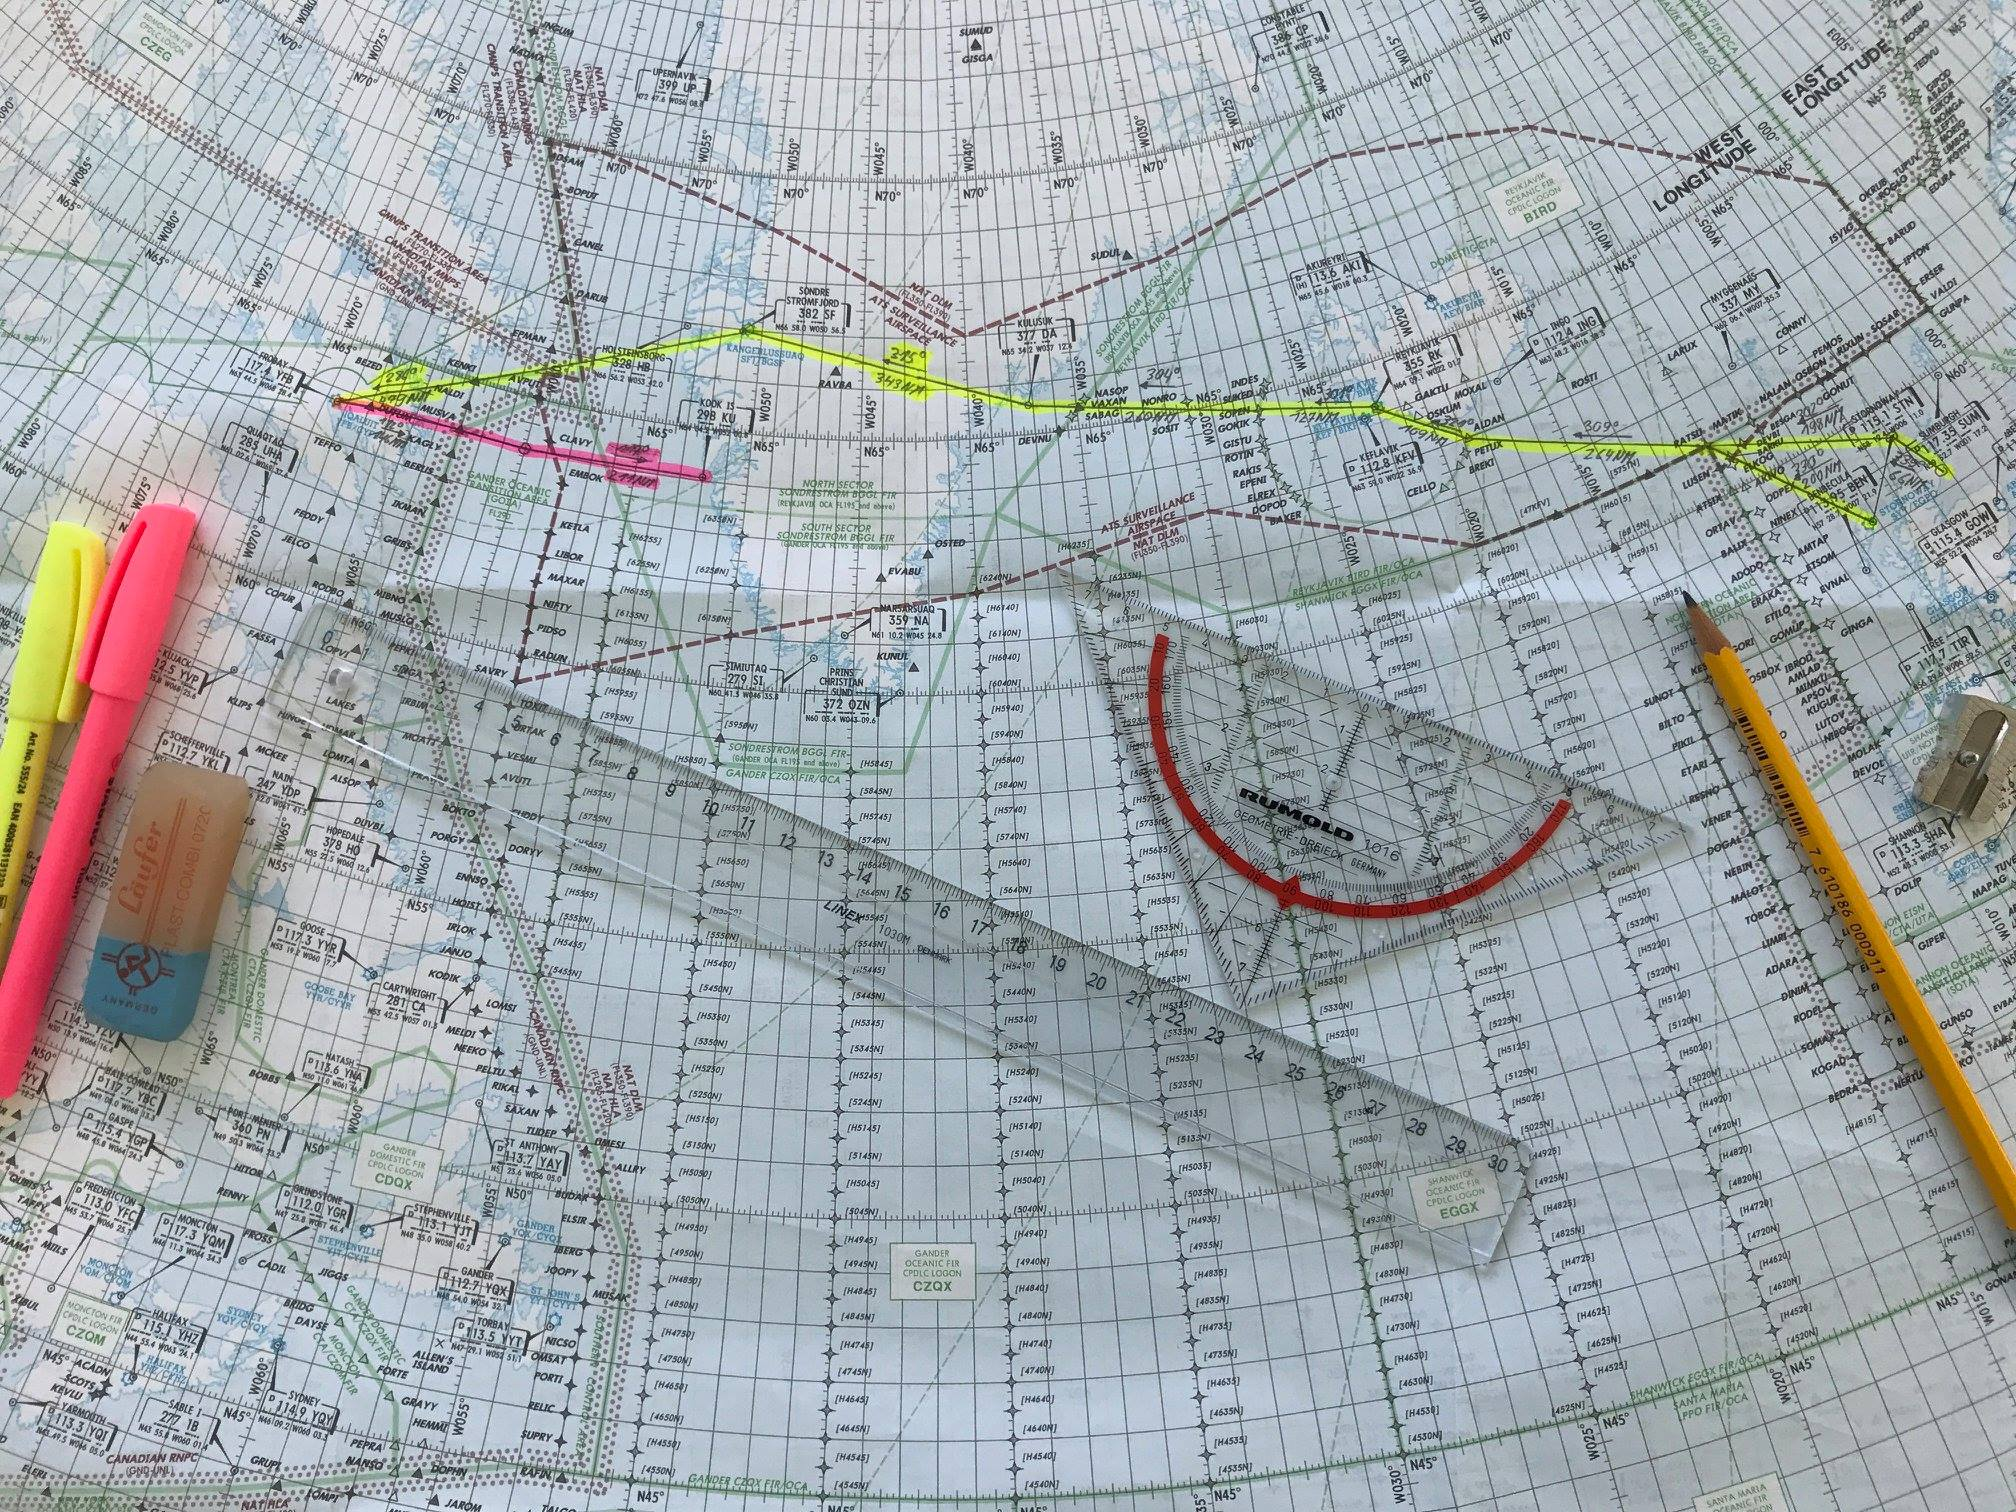 Oceanic Plotting: Classic Navigation meets New Age Tech